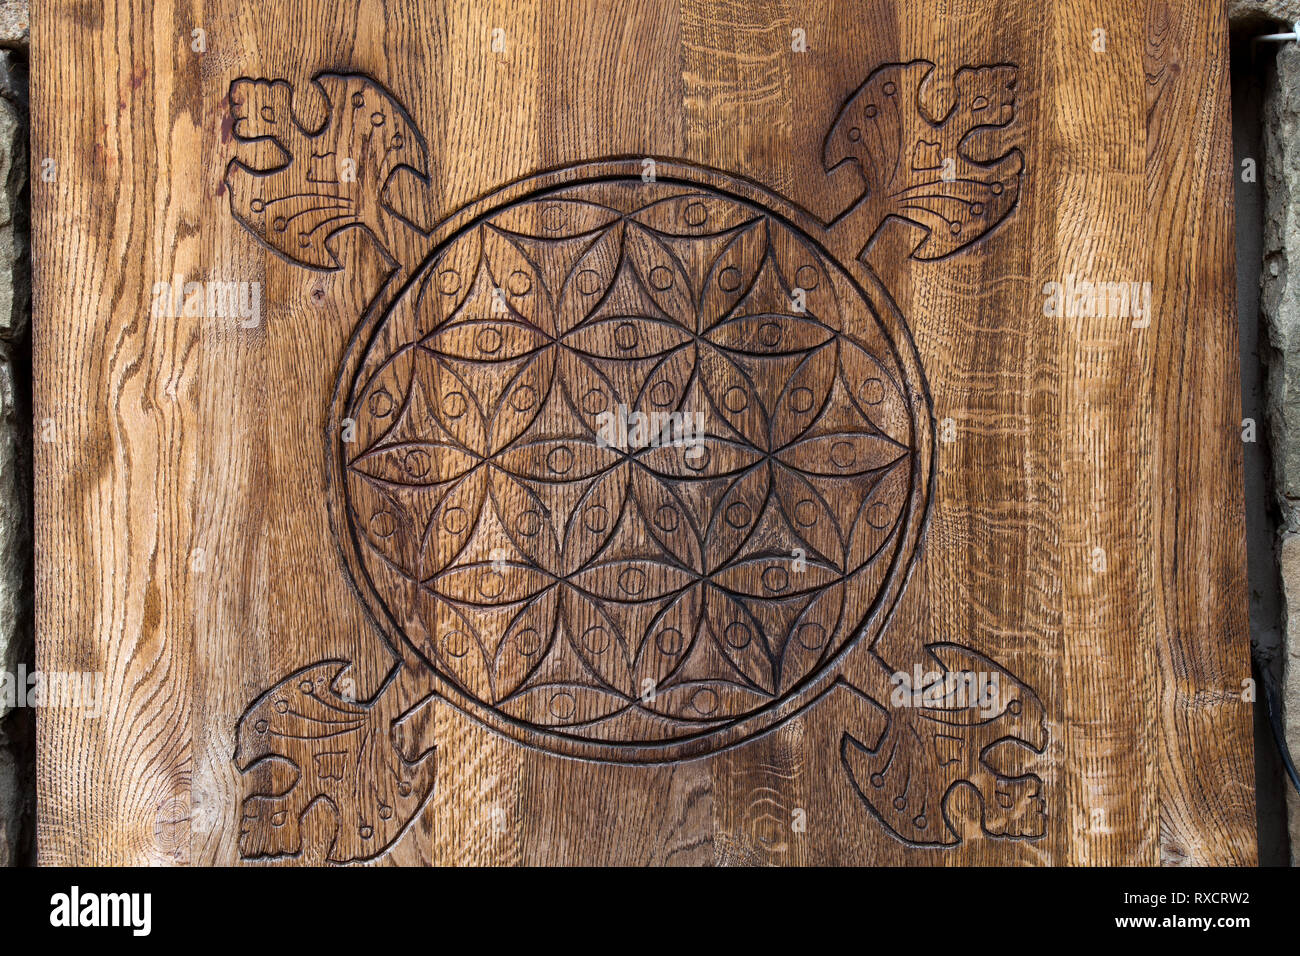 Wooden Flower of Life.  The Flower of life is an ancient symbol of Sacred Geometry and represents the fundamental order of creation. - Stock Image